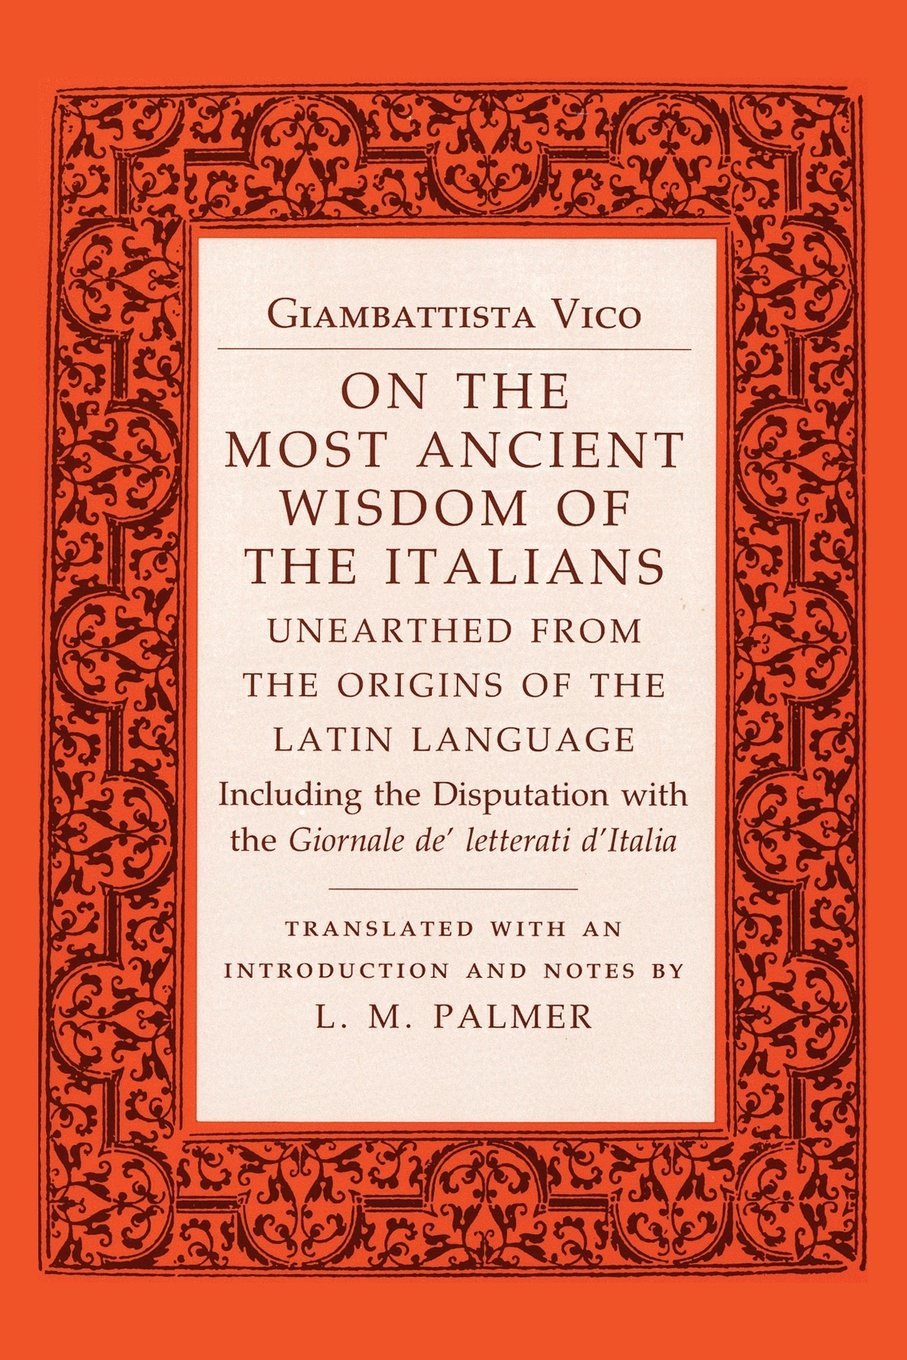 On the Most Ancient Wisdom of the Italians: Unearthed from the Origins of the Latin Language